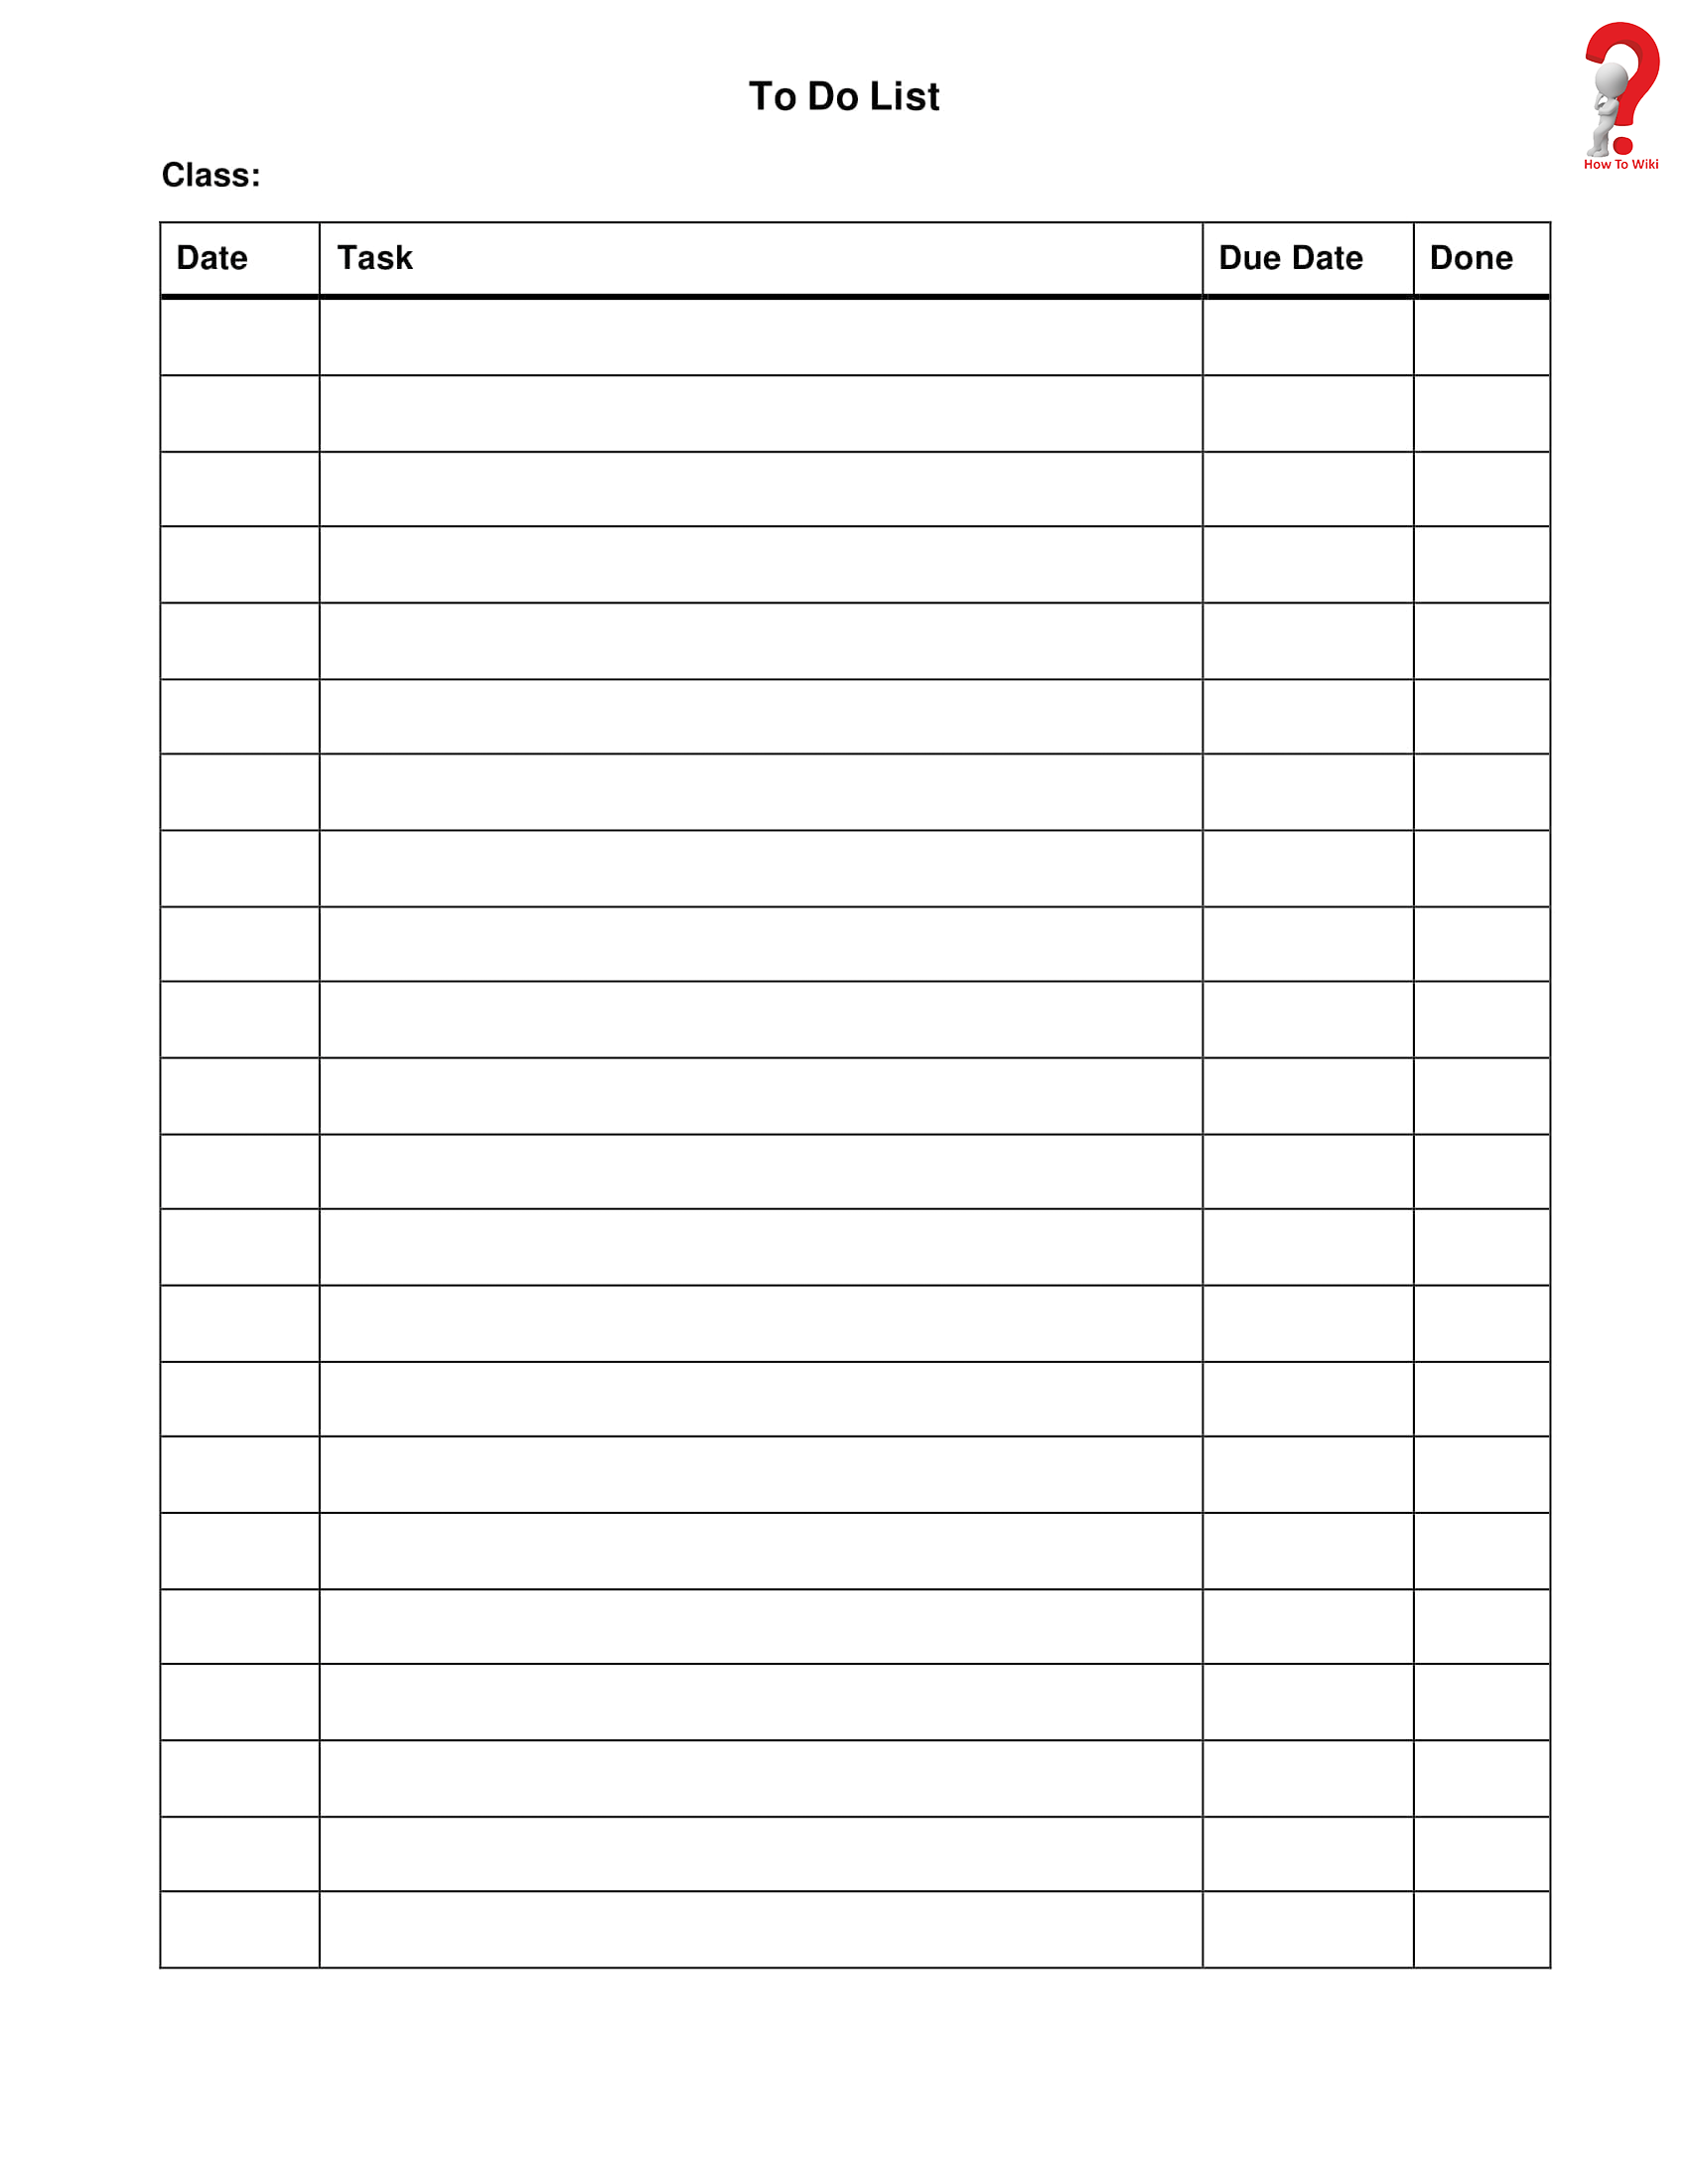 Daily To-Do List In Word